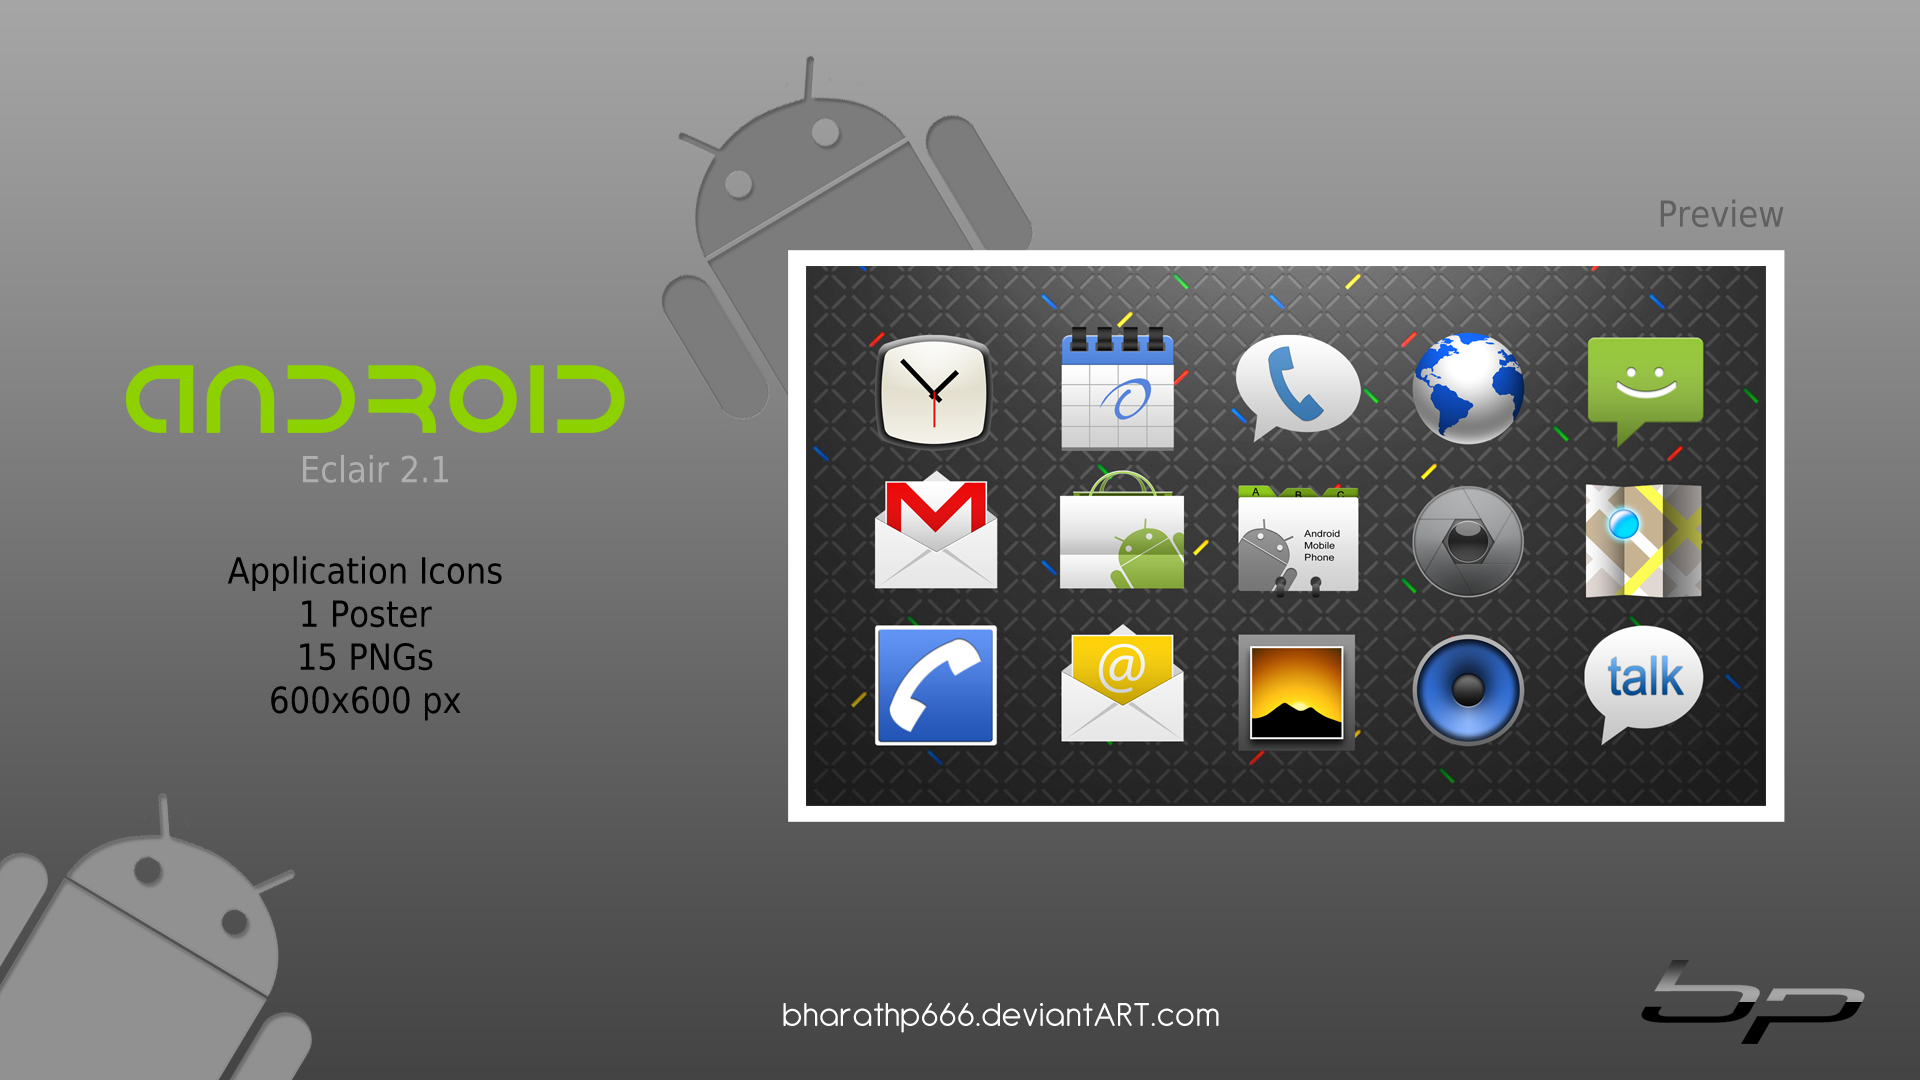 ndroid Apps 4 Wallpaper Wallpaper 1920x1080